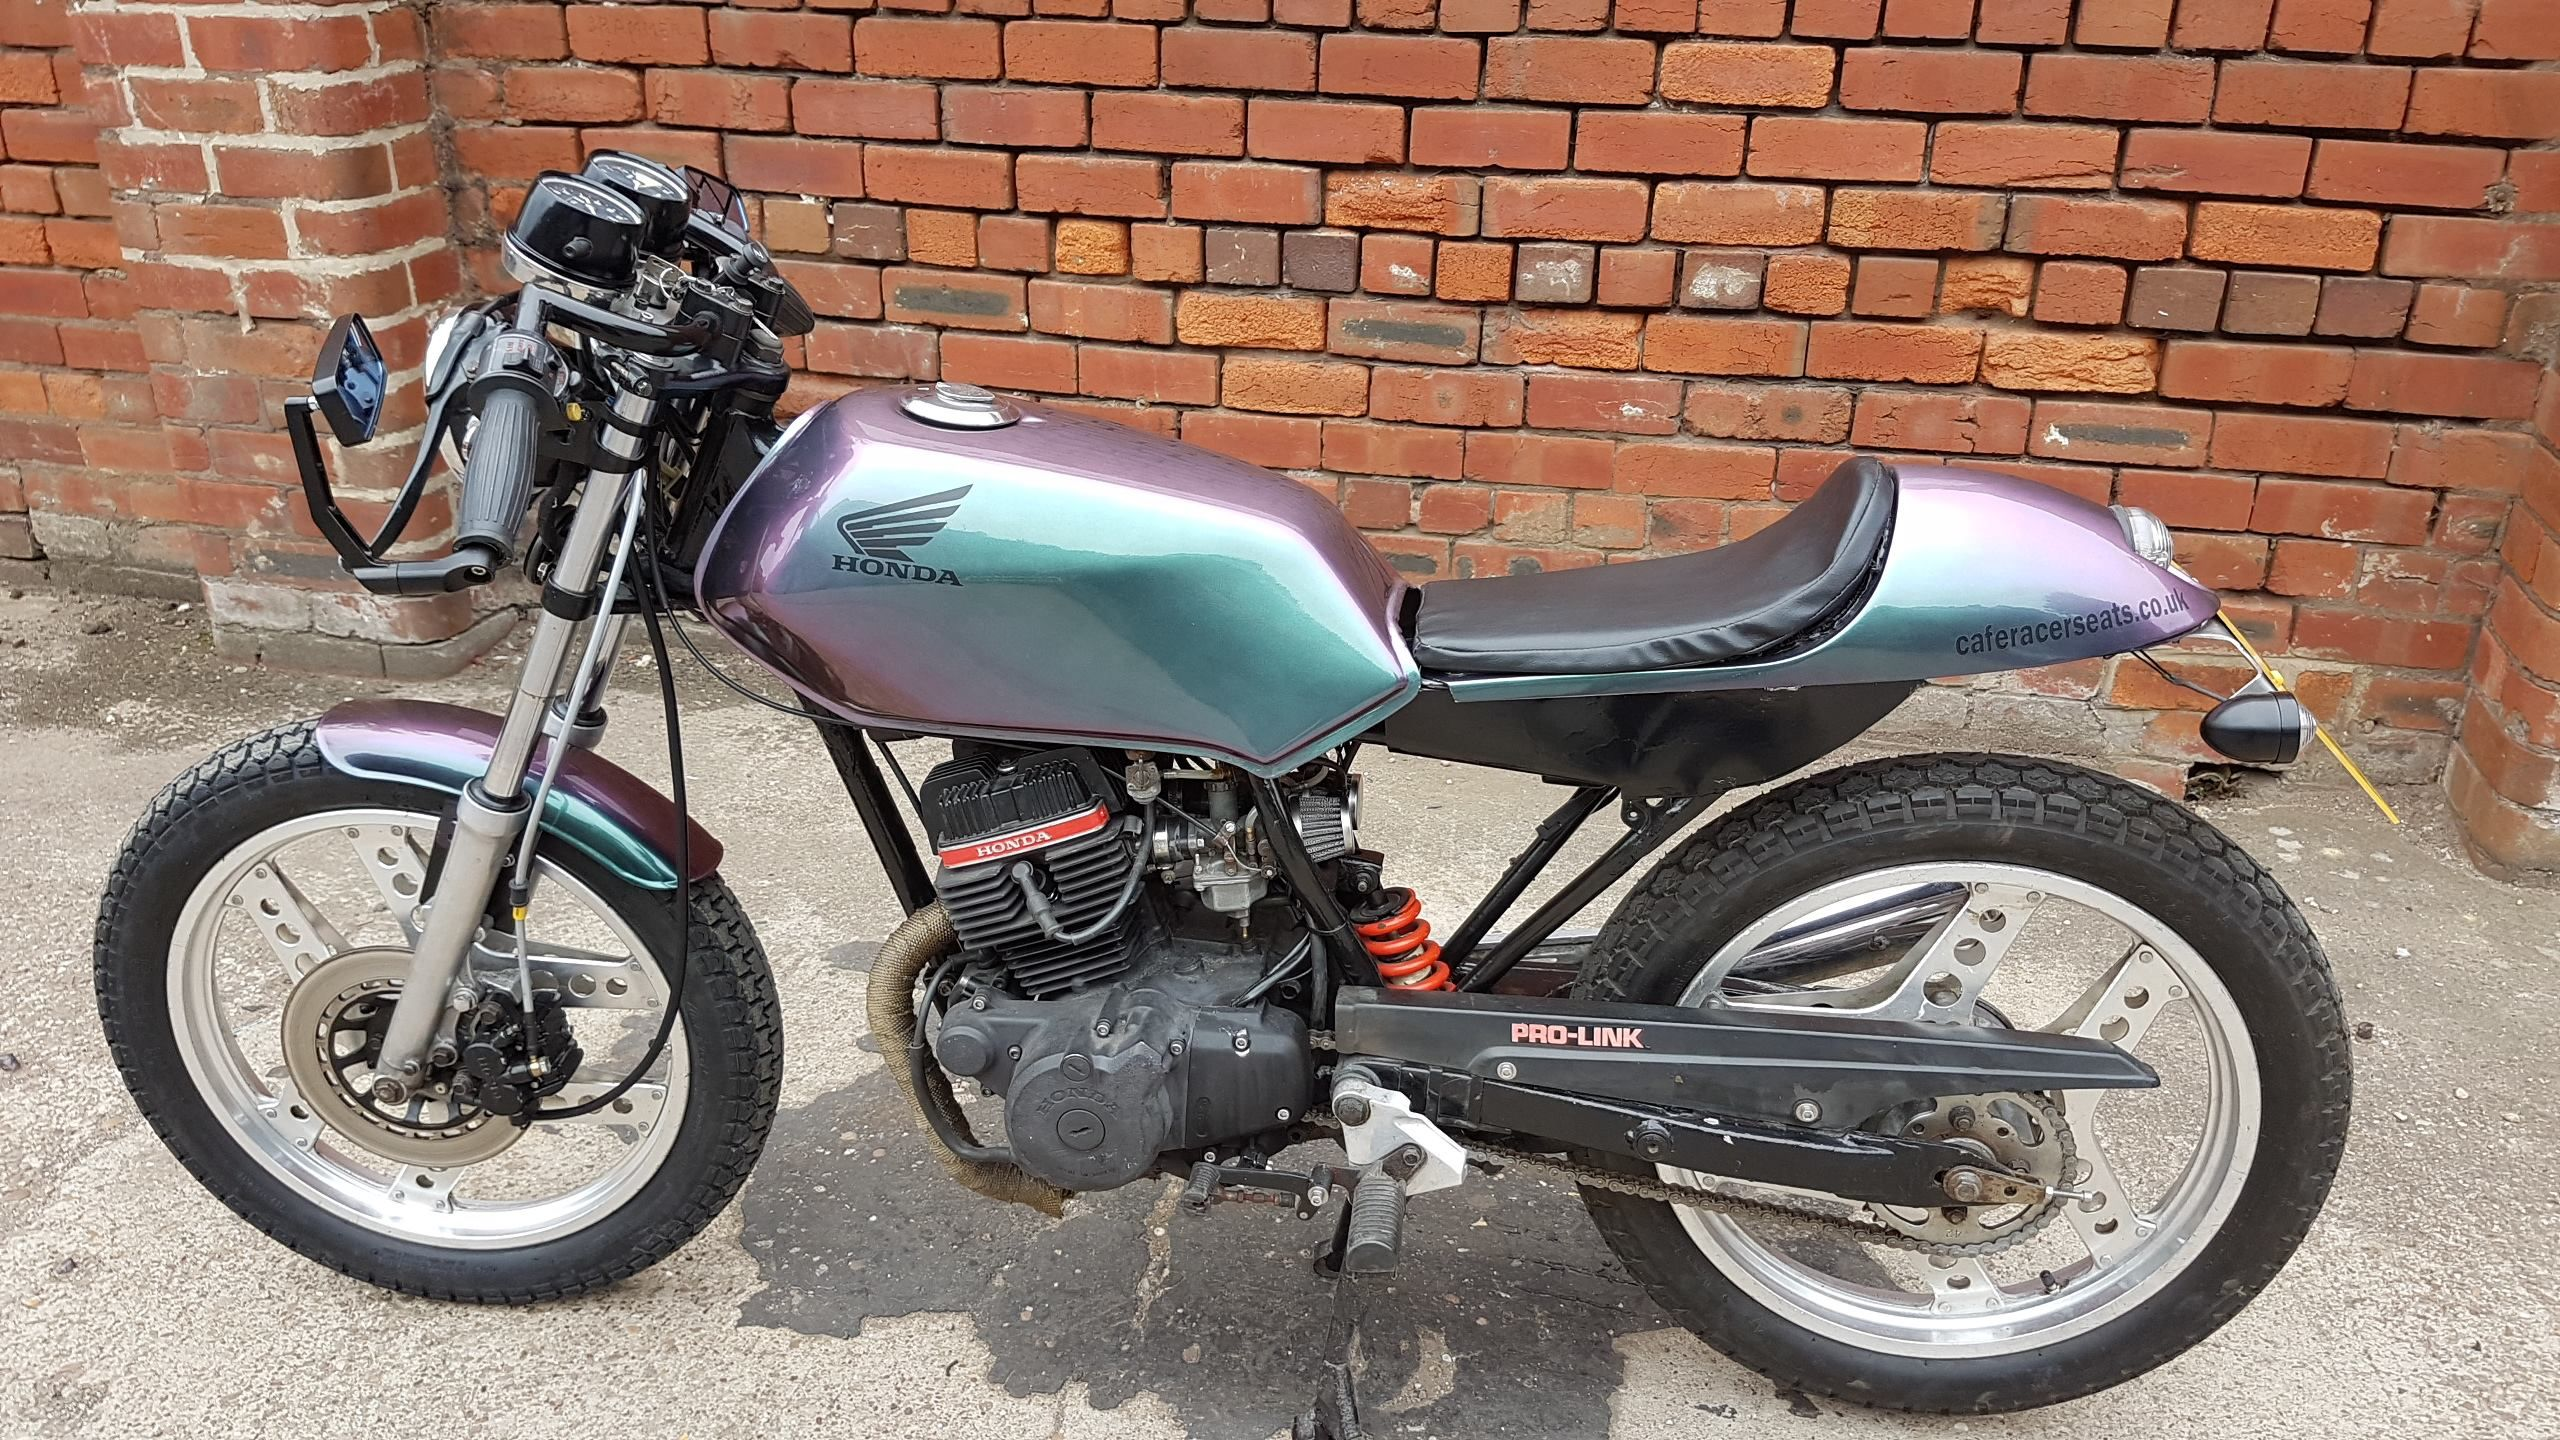 hight resolution of honda cb125 superdream cafe racer finished in flip paint by complete cafe racer